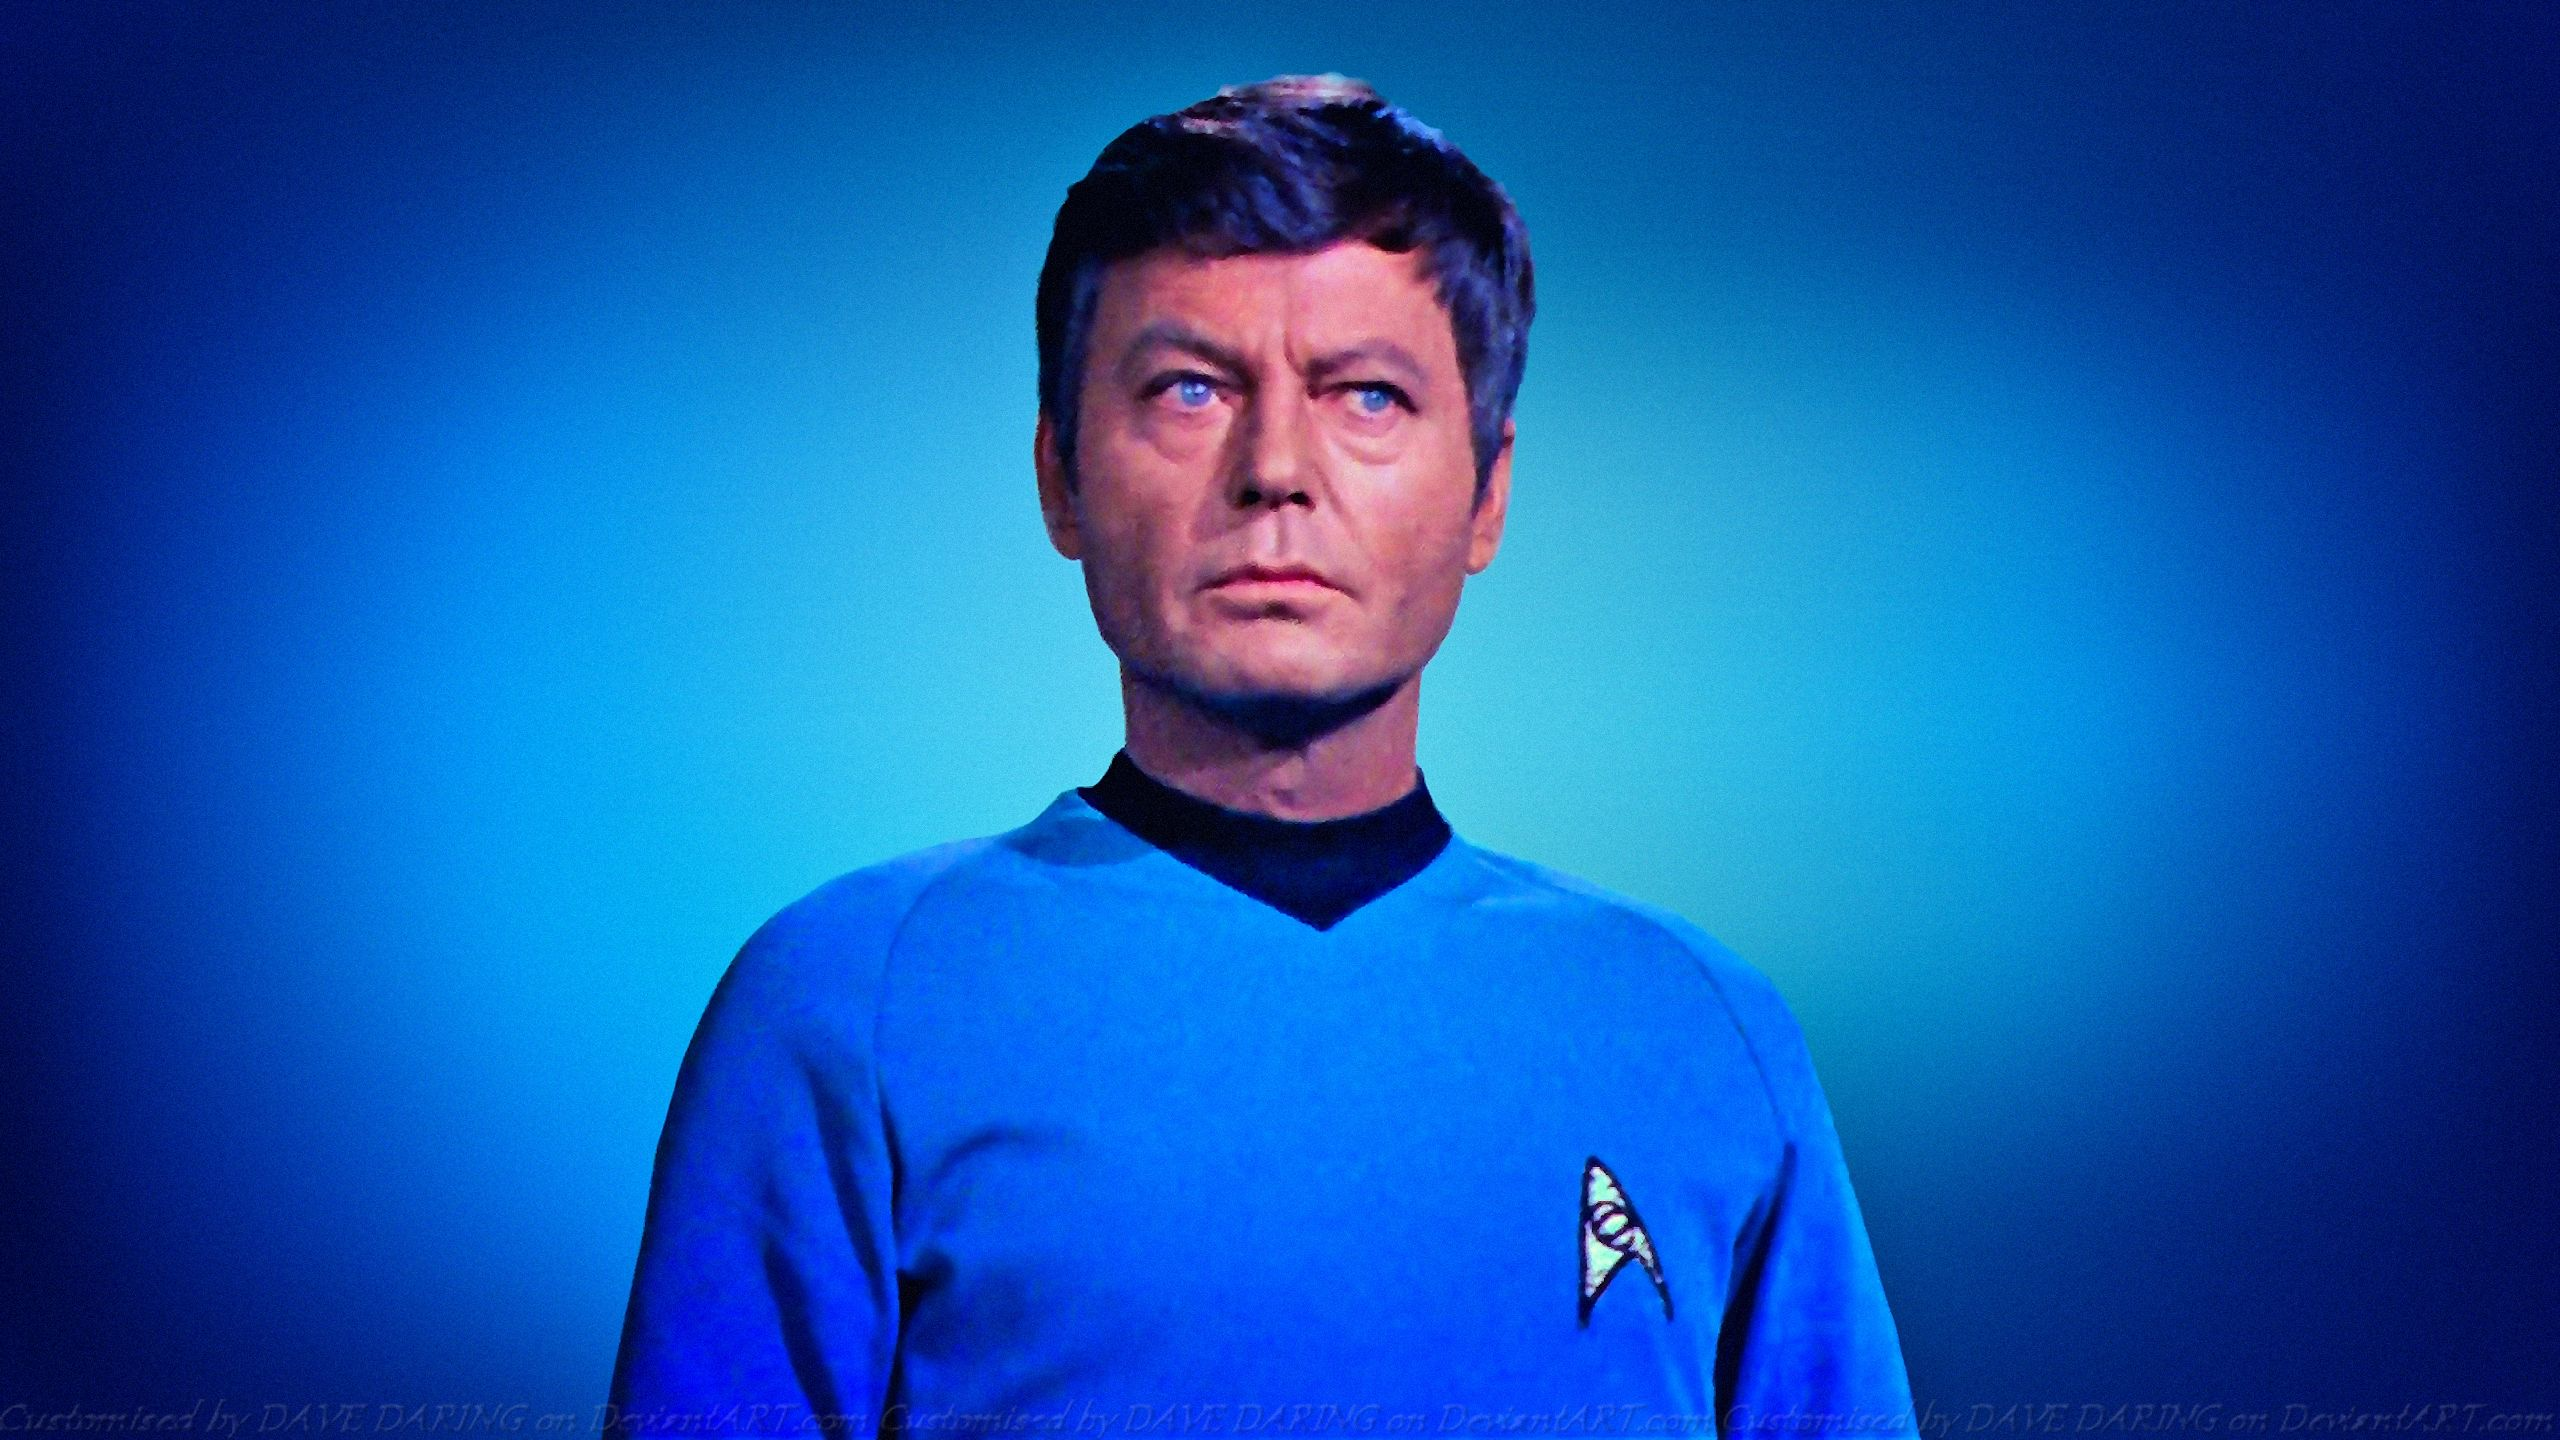 deforest kelley poetry